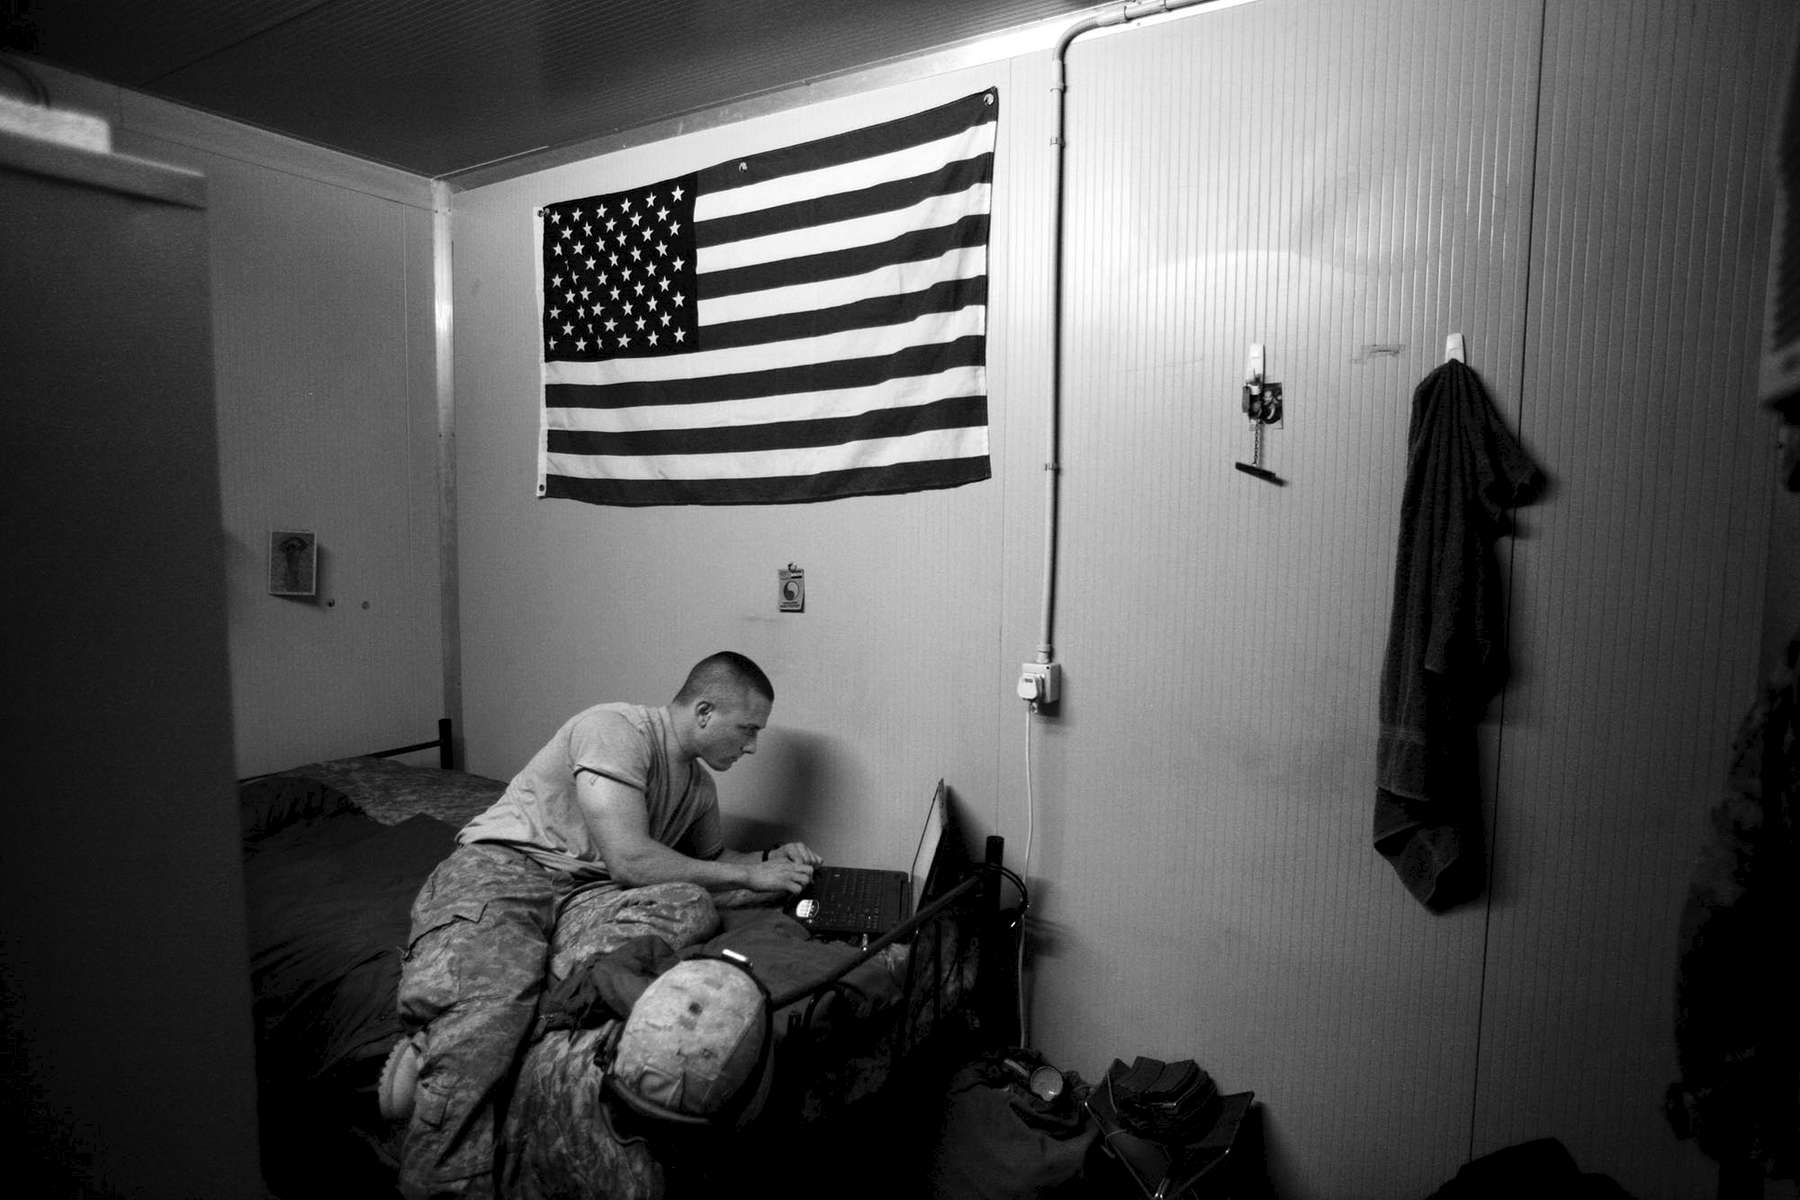 {quote}Everybody should do something for their country,{quote} said Specialist Ricky Chittum, 24, Here he checks the internet at Camp Adder in his room shortly before returning home. He's looking for a new dog to replace his old one which was stolen while he was on deployment. Chittum says the search for a dog is a symbol of his pending return home. {quote}A dog is a best friend. I don't have a wife to come home to and a dog is a good companion.{quote} Chittum is from Covington.